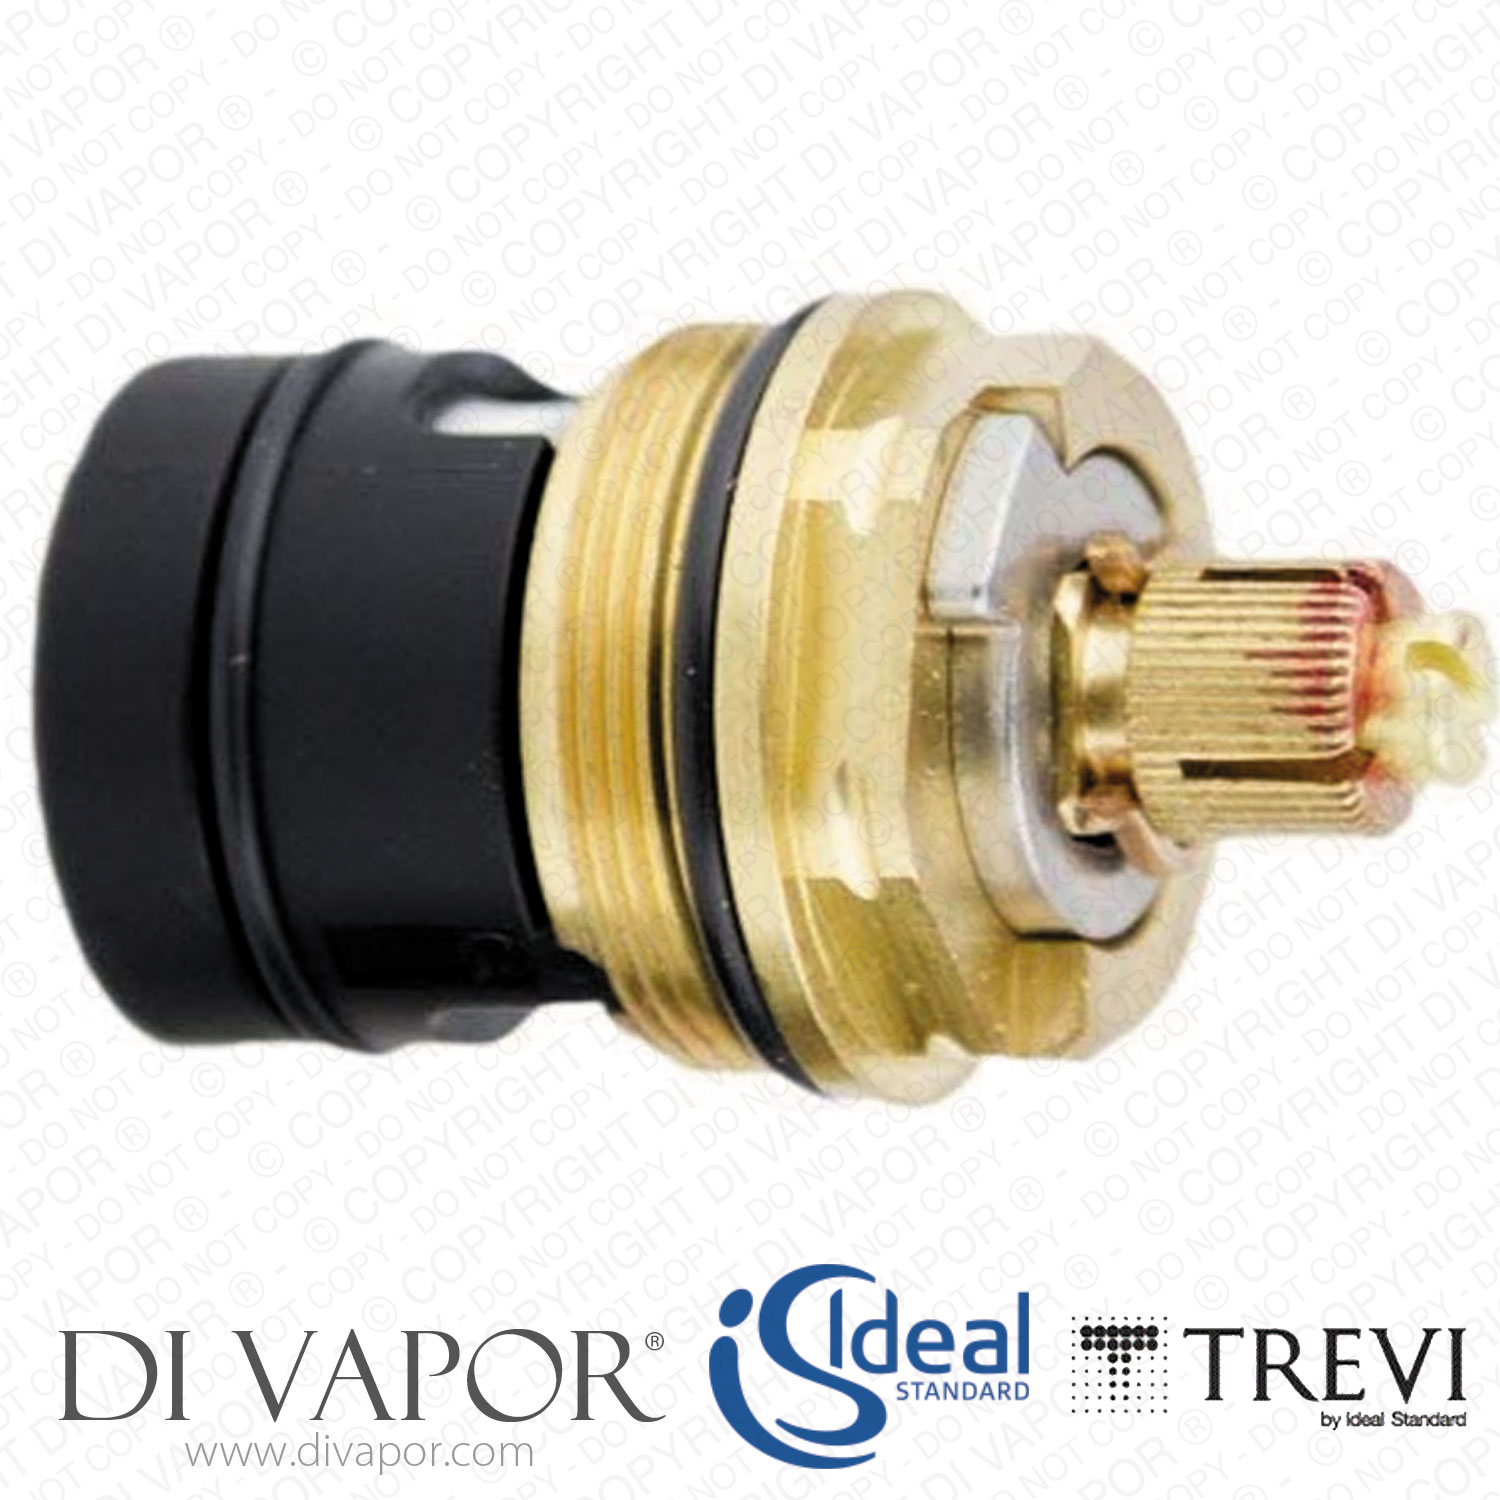 A960938nu Ideal Standard Trevi Dualux On Off Flow